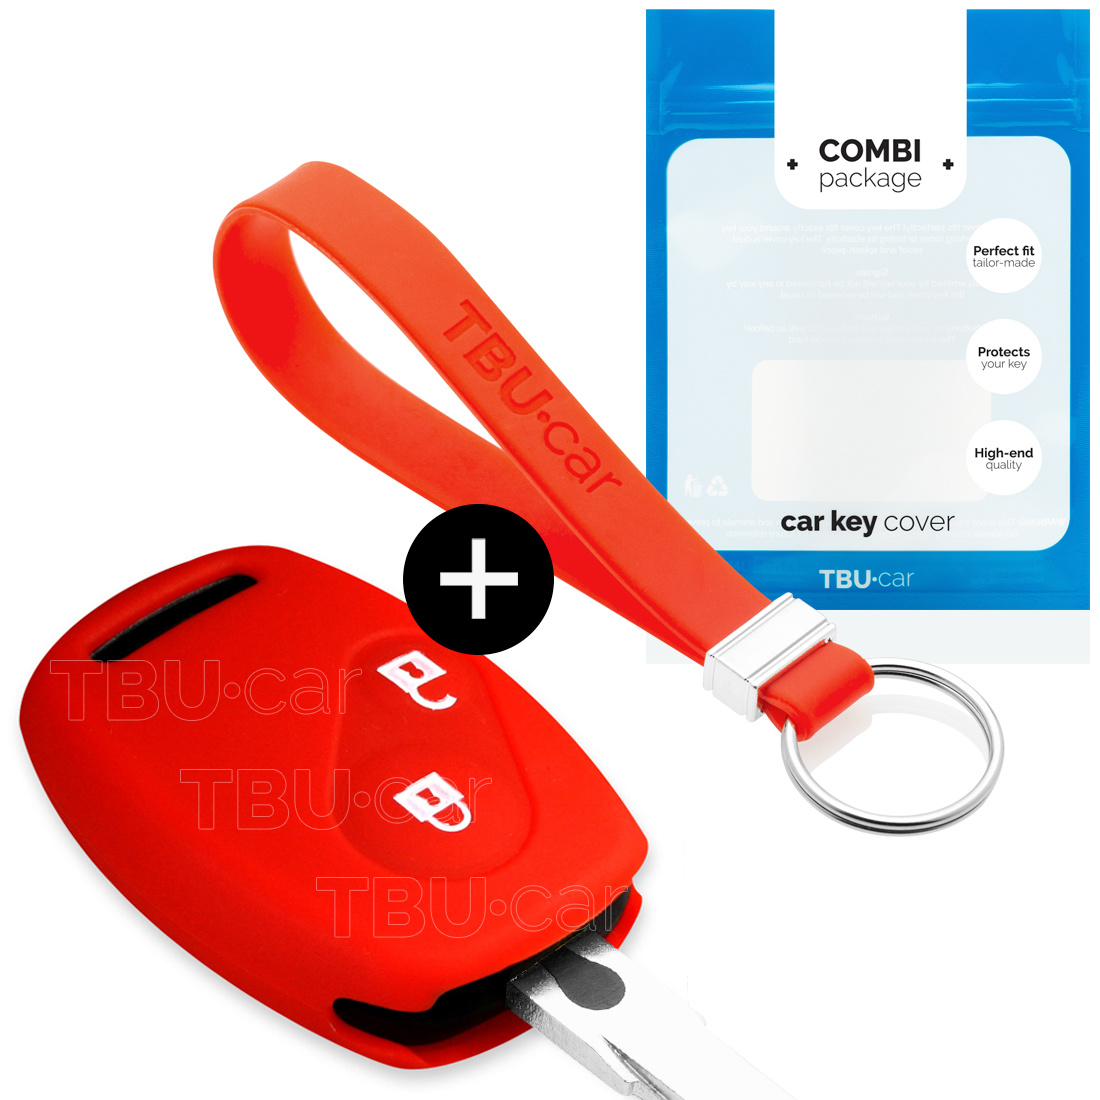 Honda Car key cover - Silicone Protective Remote Key Shell - FOB Case Cover - Red